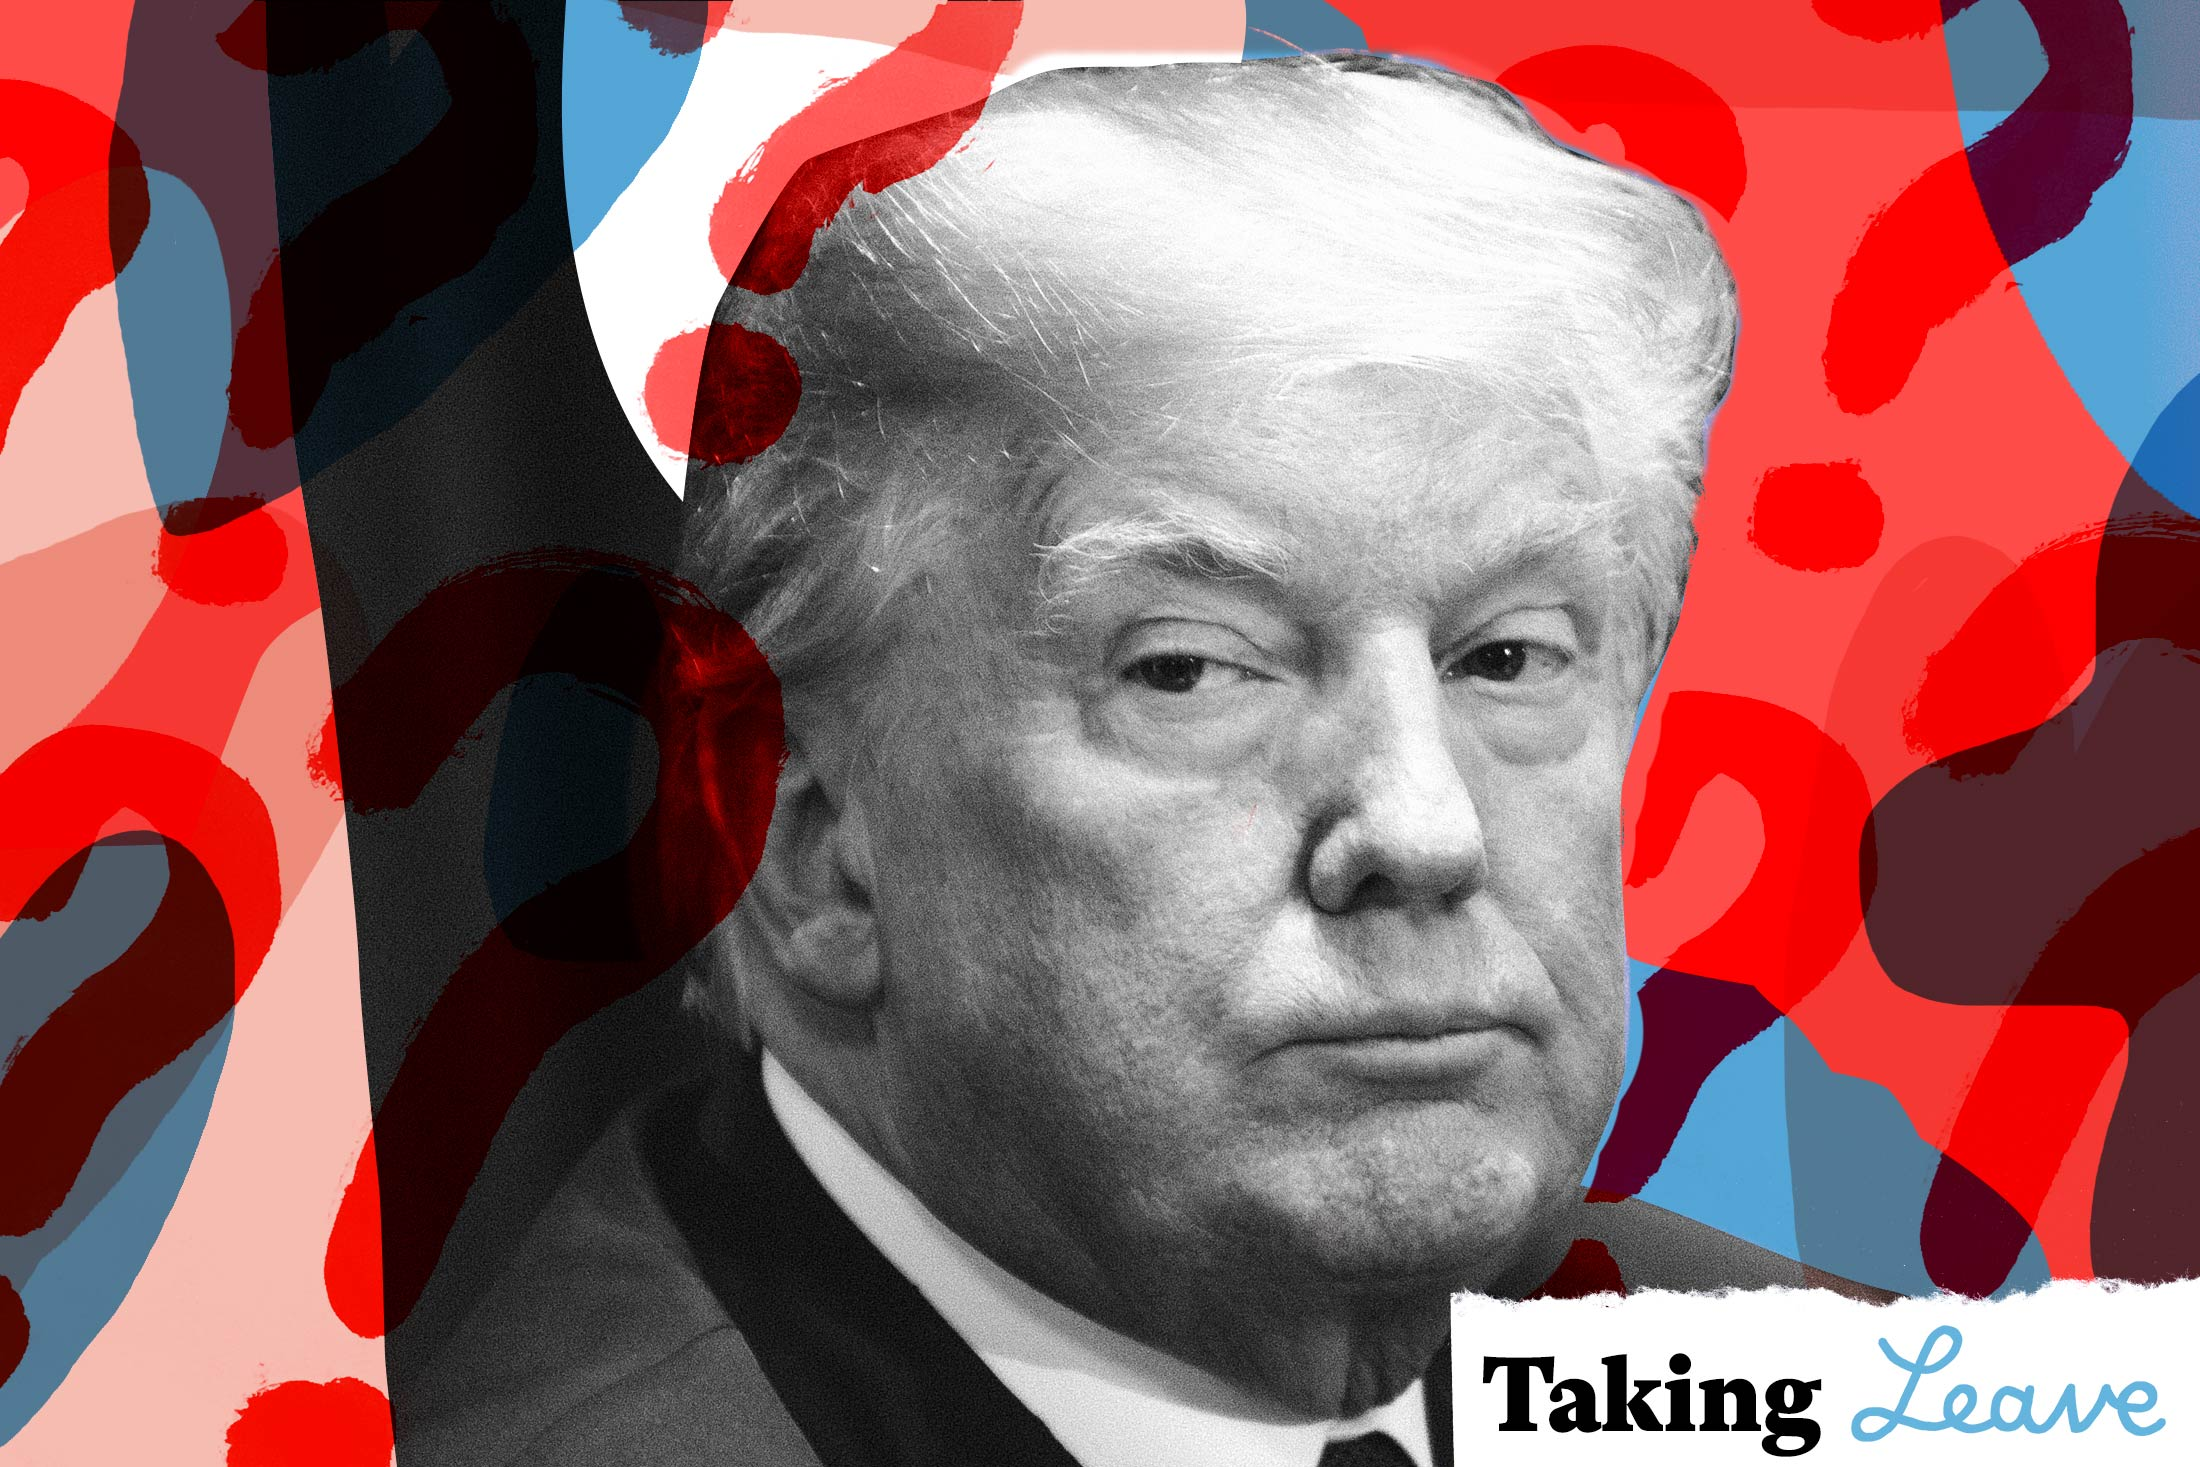 Photo illustration: Donald Trump surrounded by question marks.